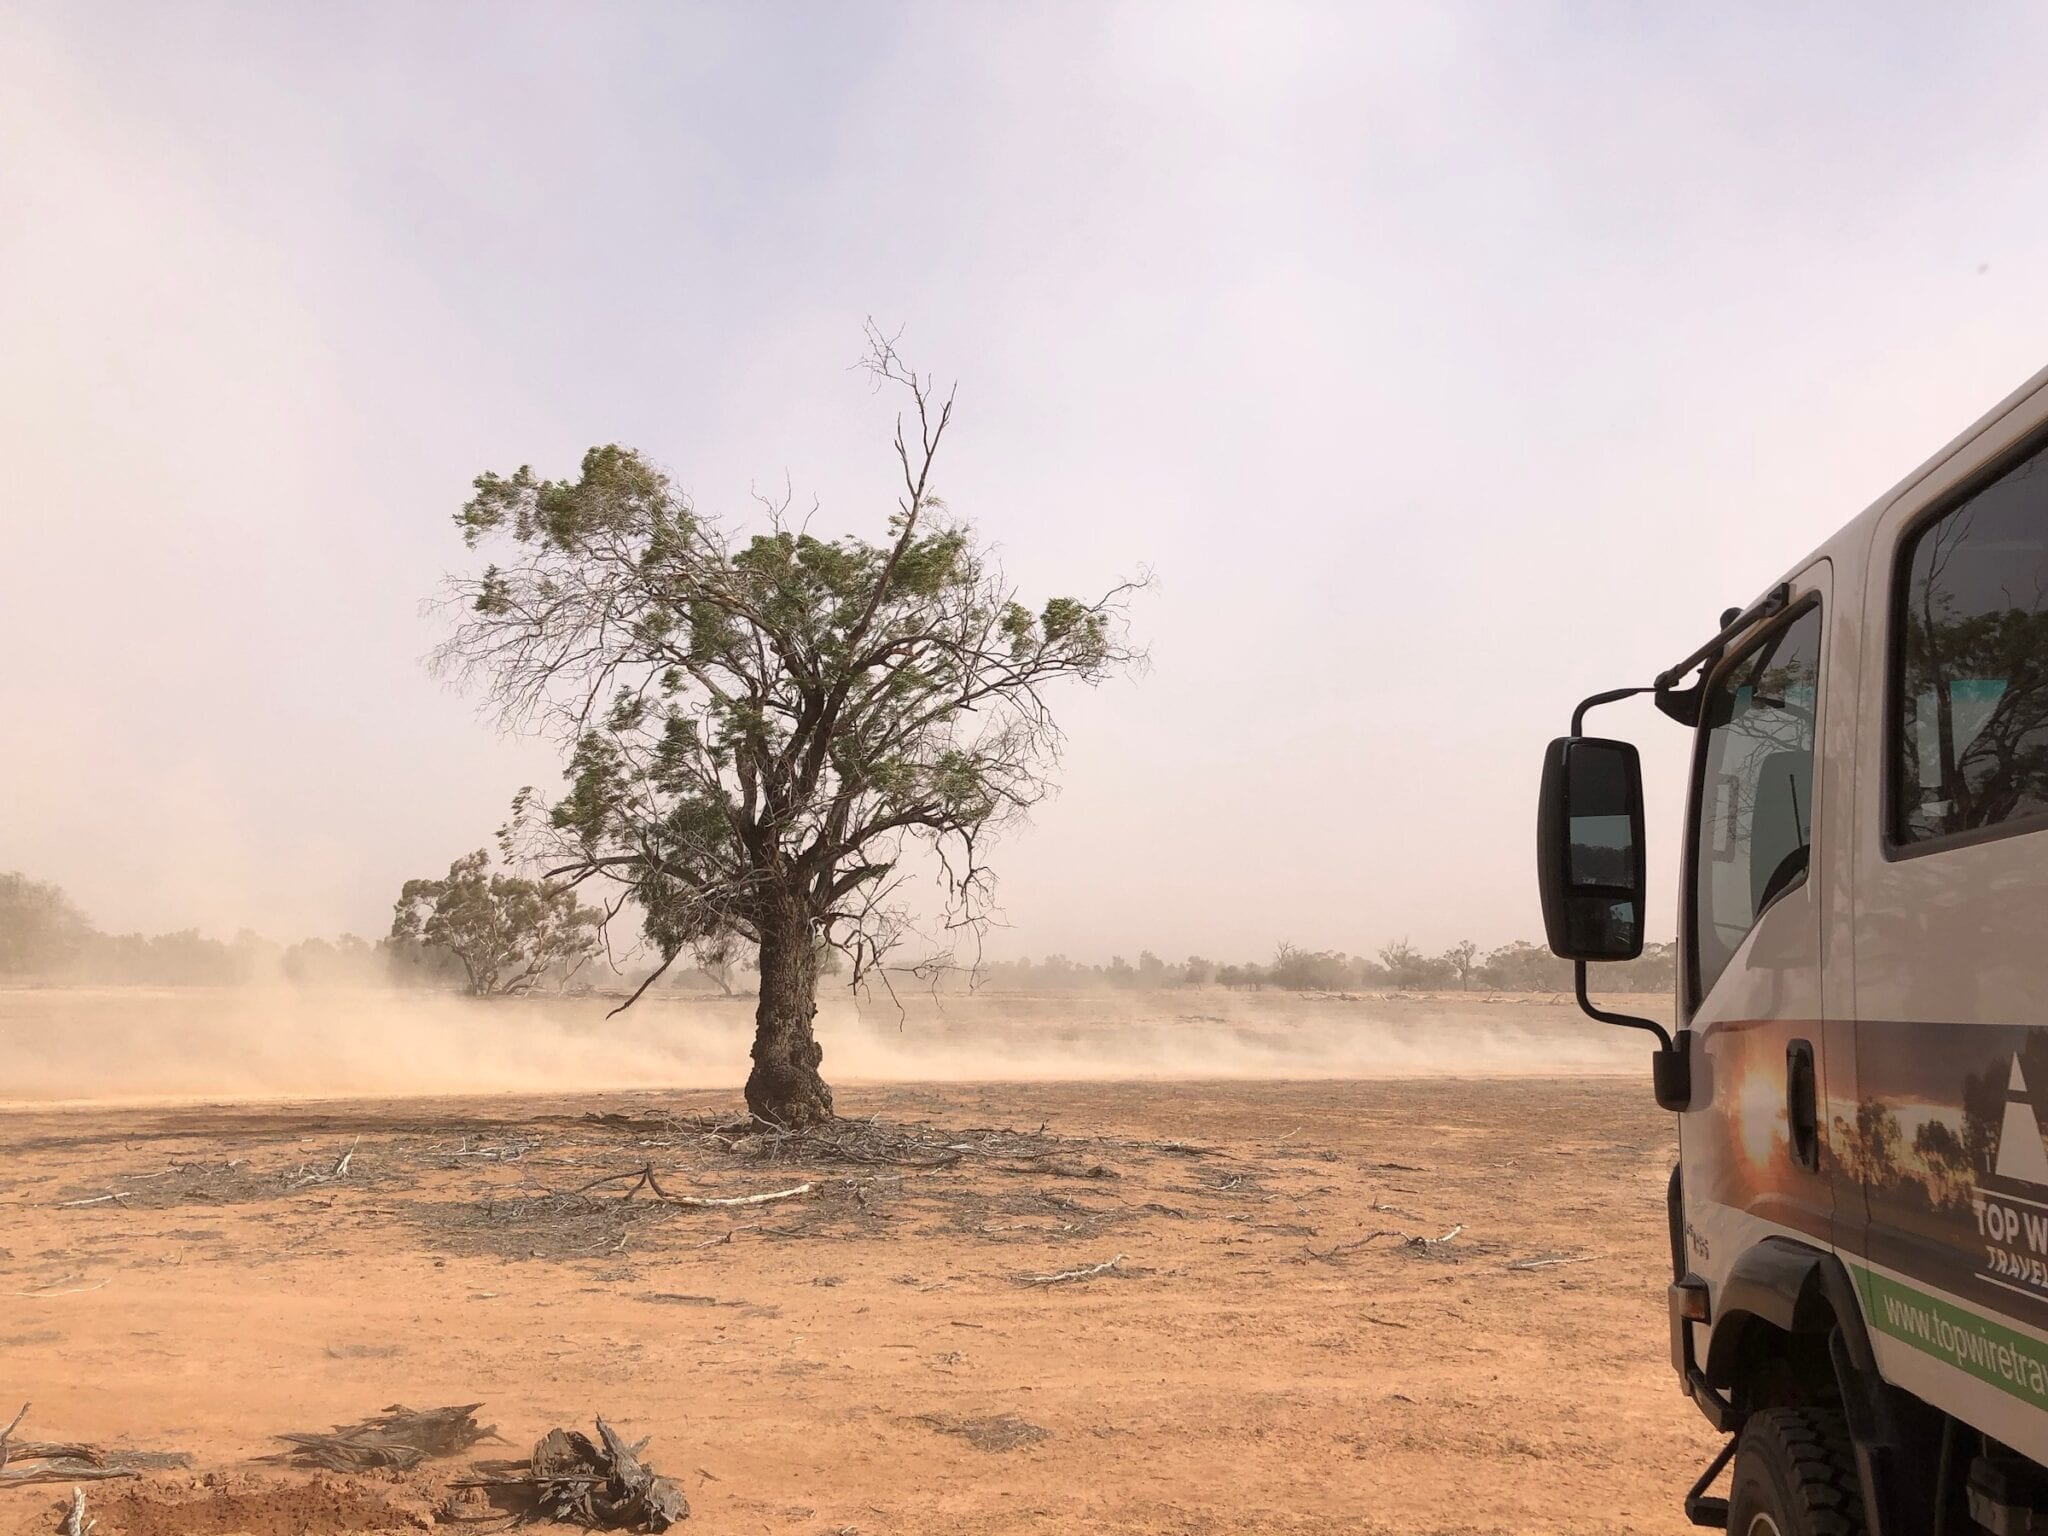 A dust storm. NSW drought.